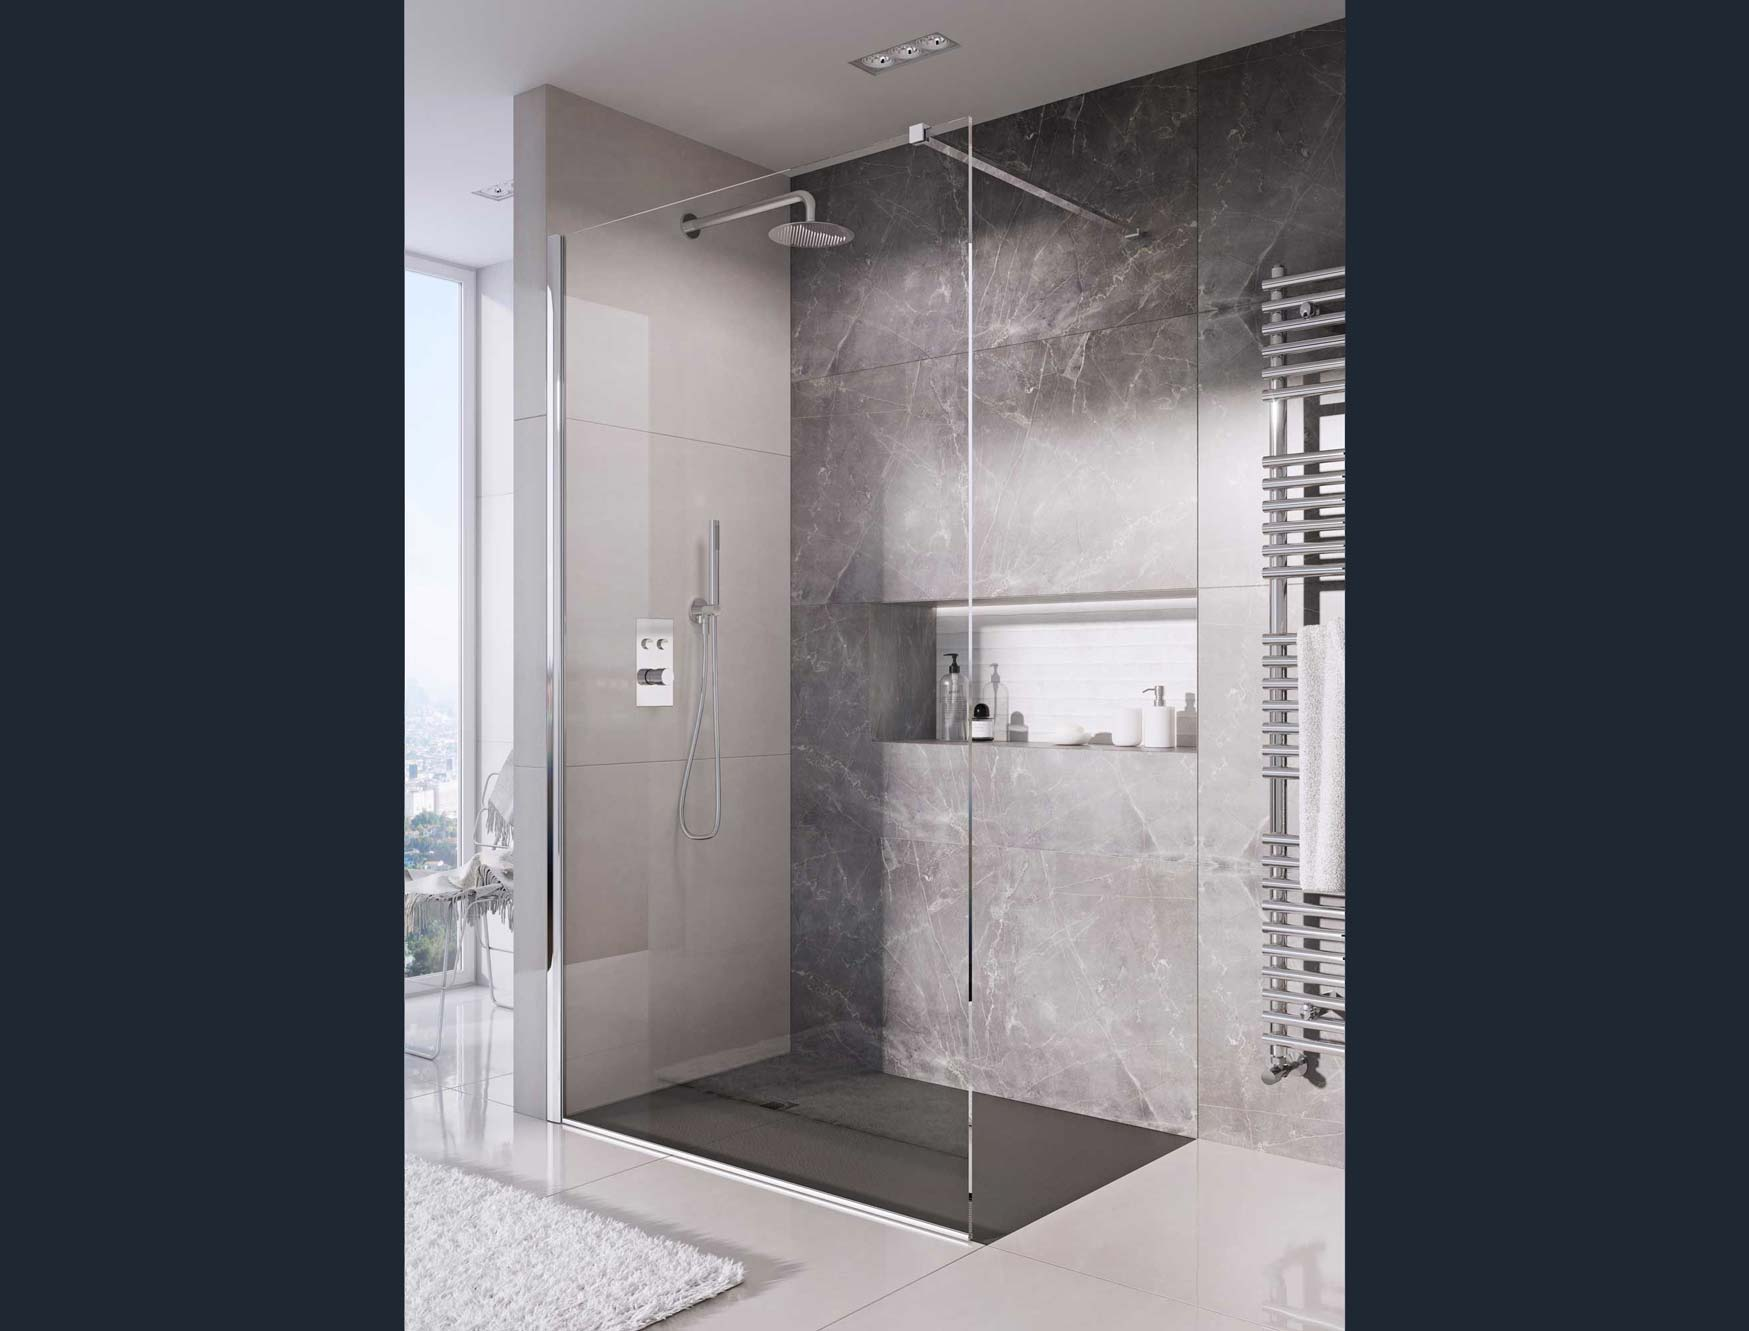 Providing a clean and minimalist finish for the bathroom. This designer shower tray has been made with a natural stone resin, complete with a gel coat slate textured finish, providing excellent durability and anti-bacterial properties, as well as a grade three anti-slip rating.